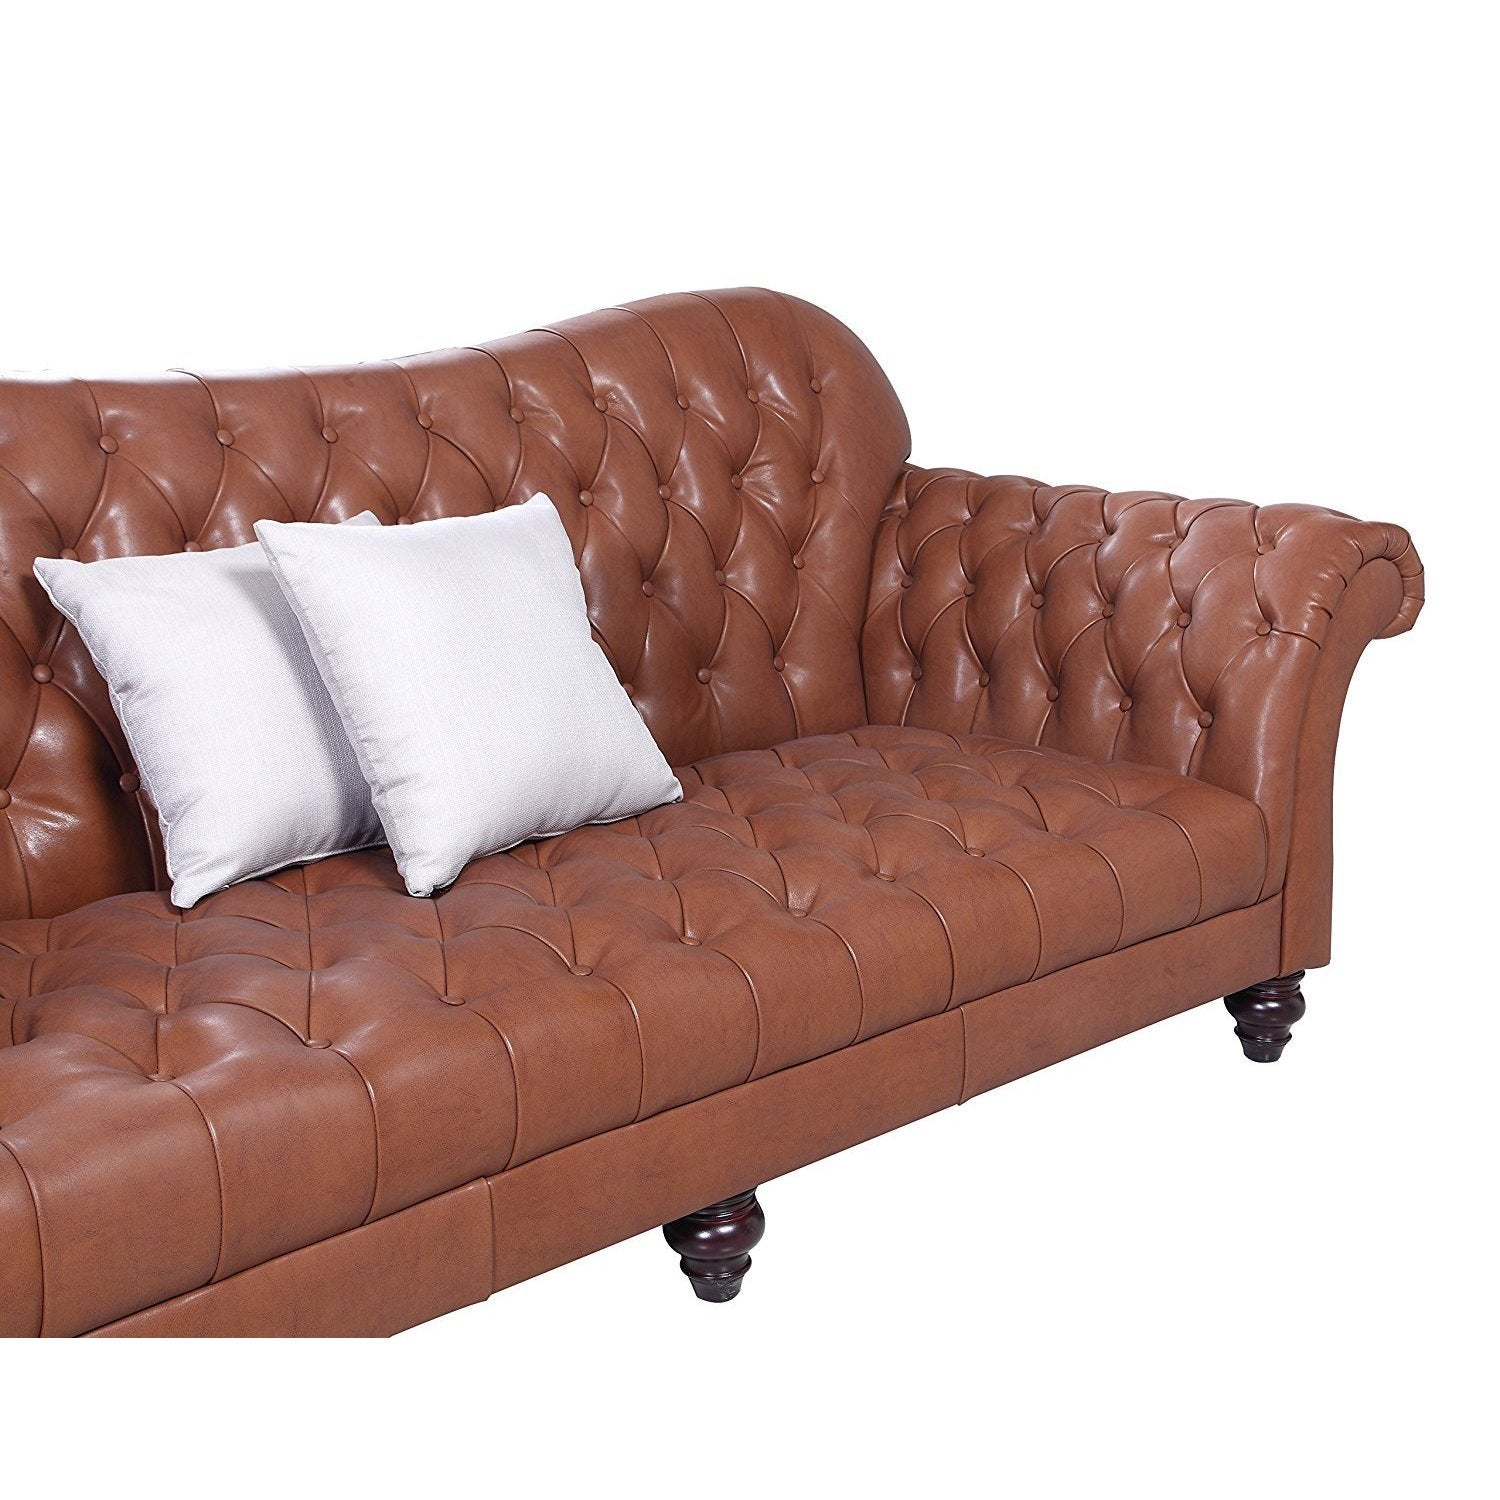 Charmant Shop Classic Tufted Real Italian Leather Tufted Victorian Sofa   Free  Shipping Today   Overstock.com   14705847